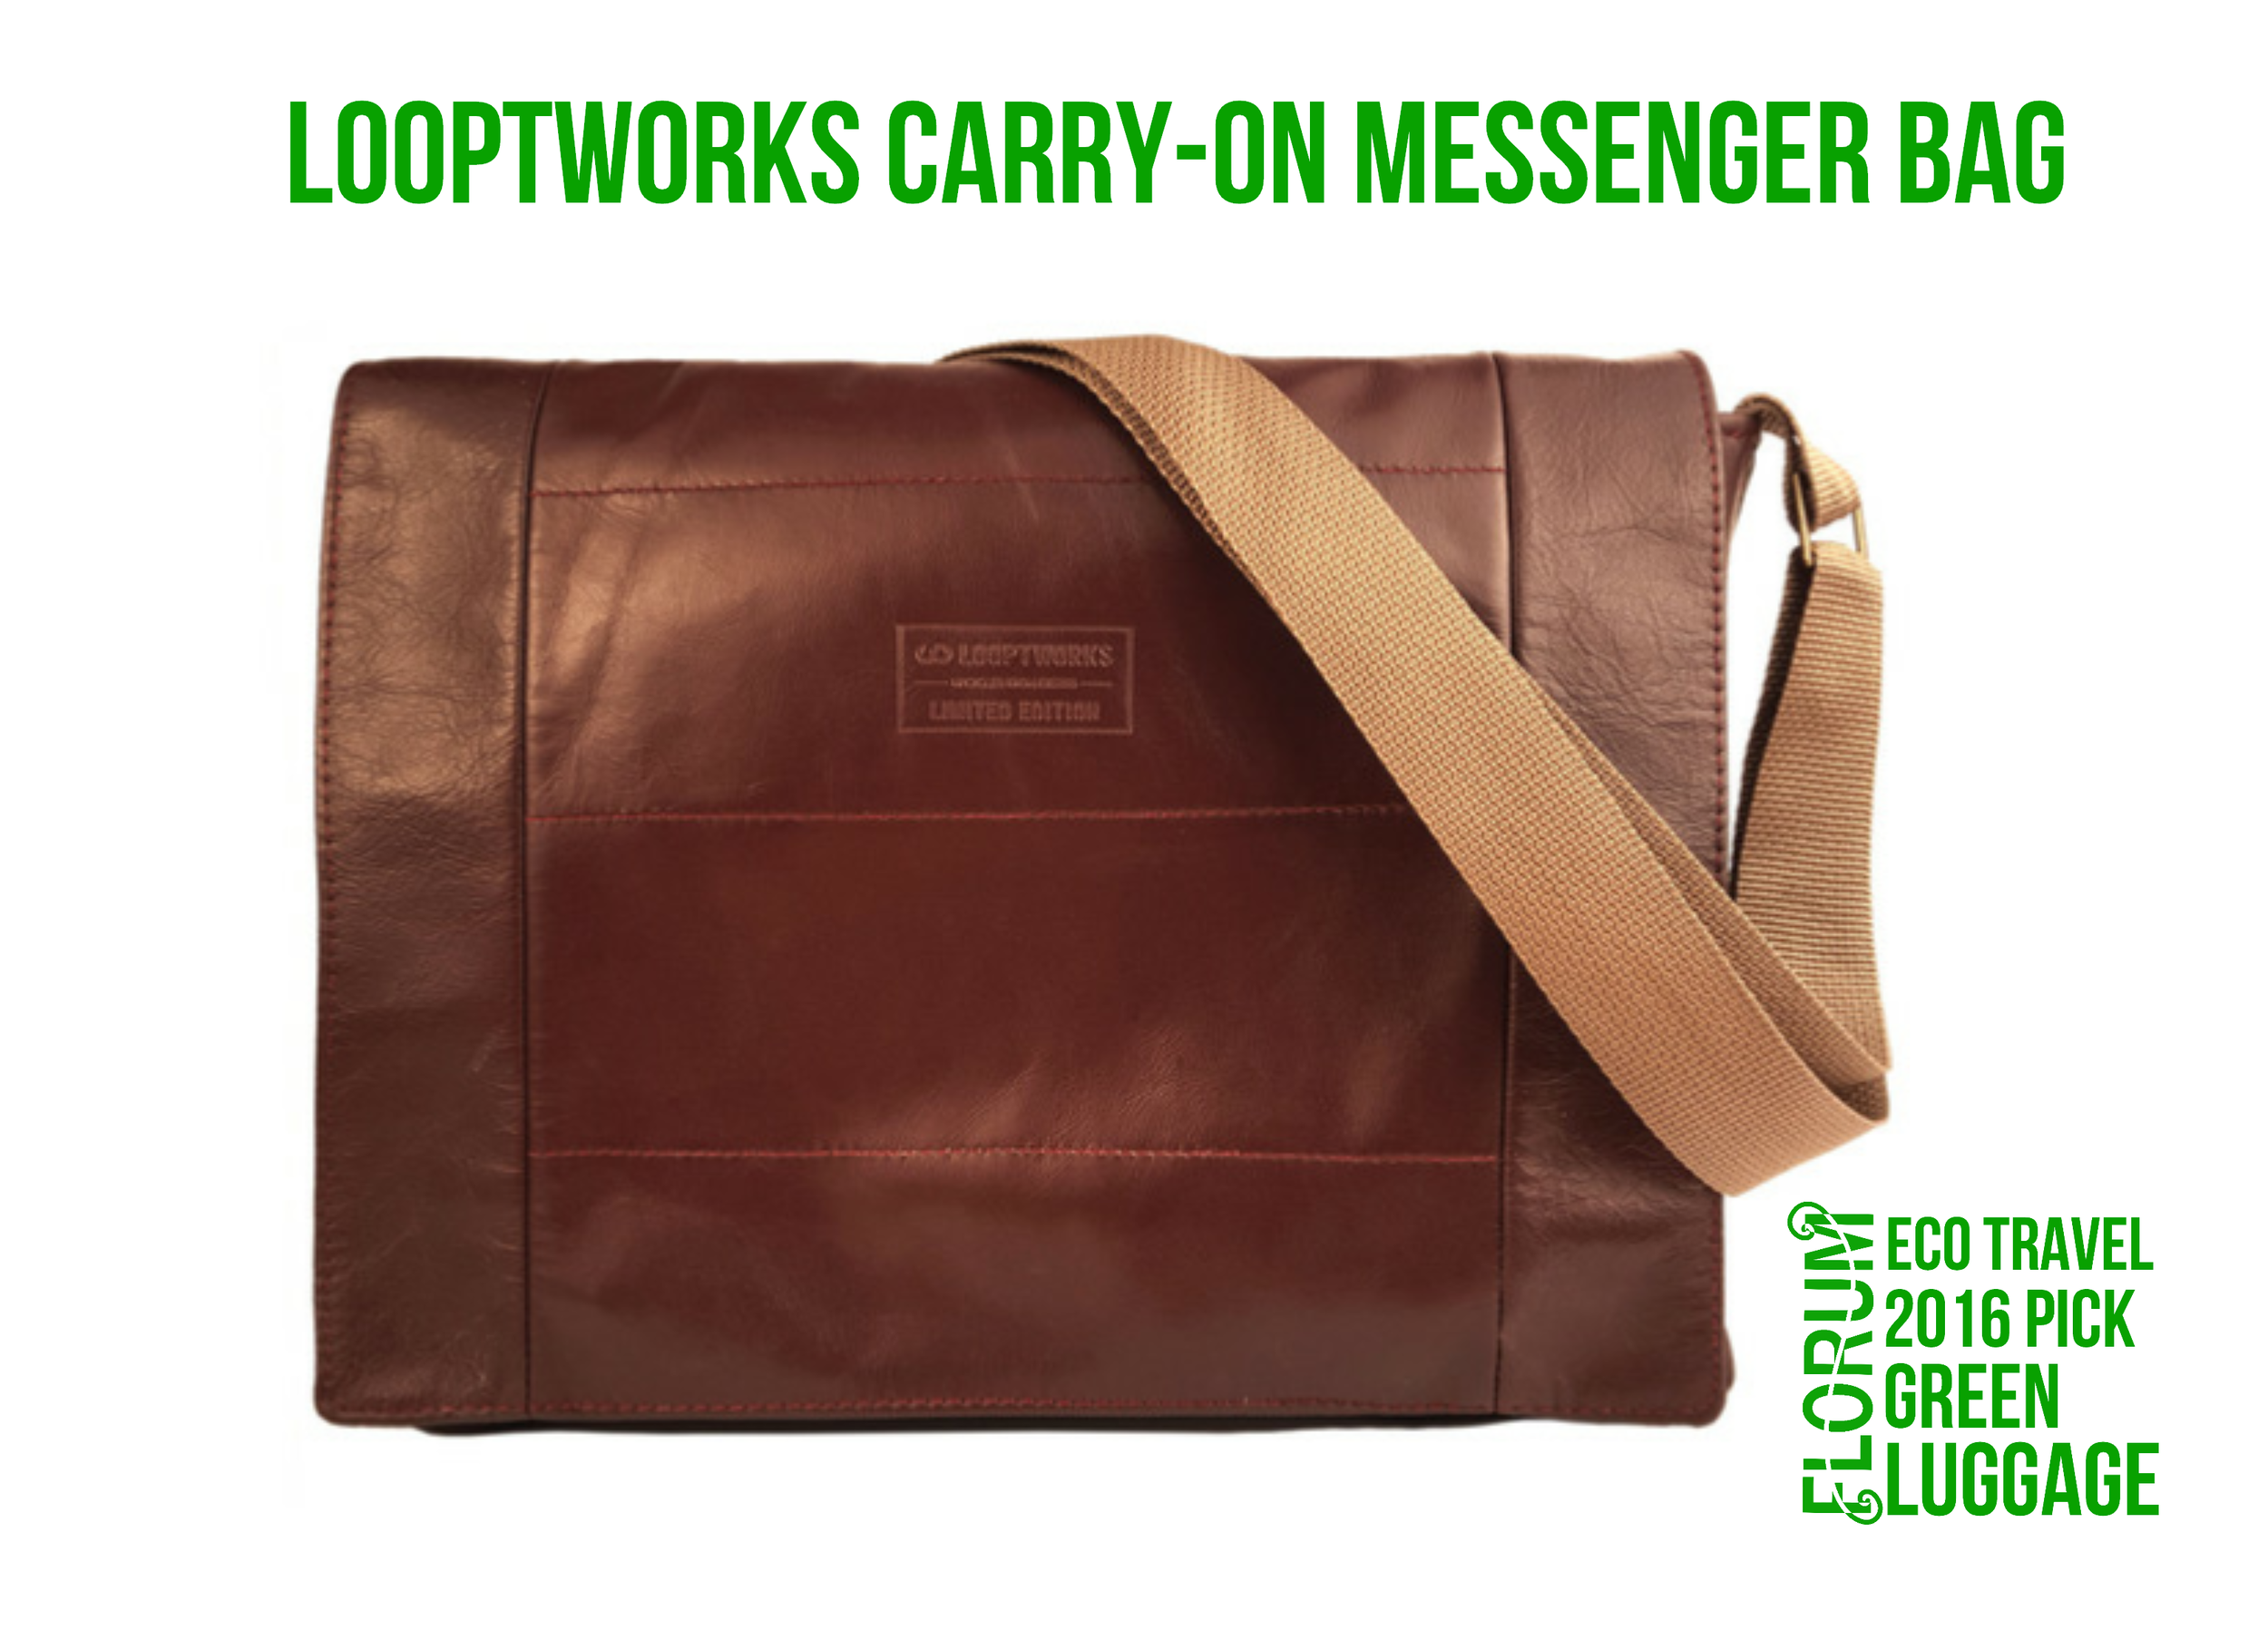 Florum Eco Travel 2016 Ethical Luggage Pick - LooptWorks Alaska Airlines Carryon Messenger - Noelle Lynne.png